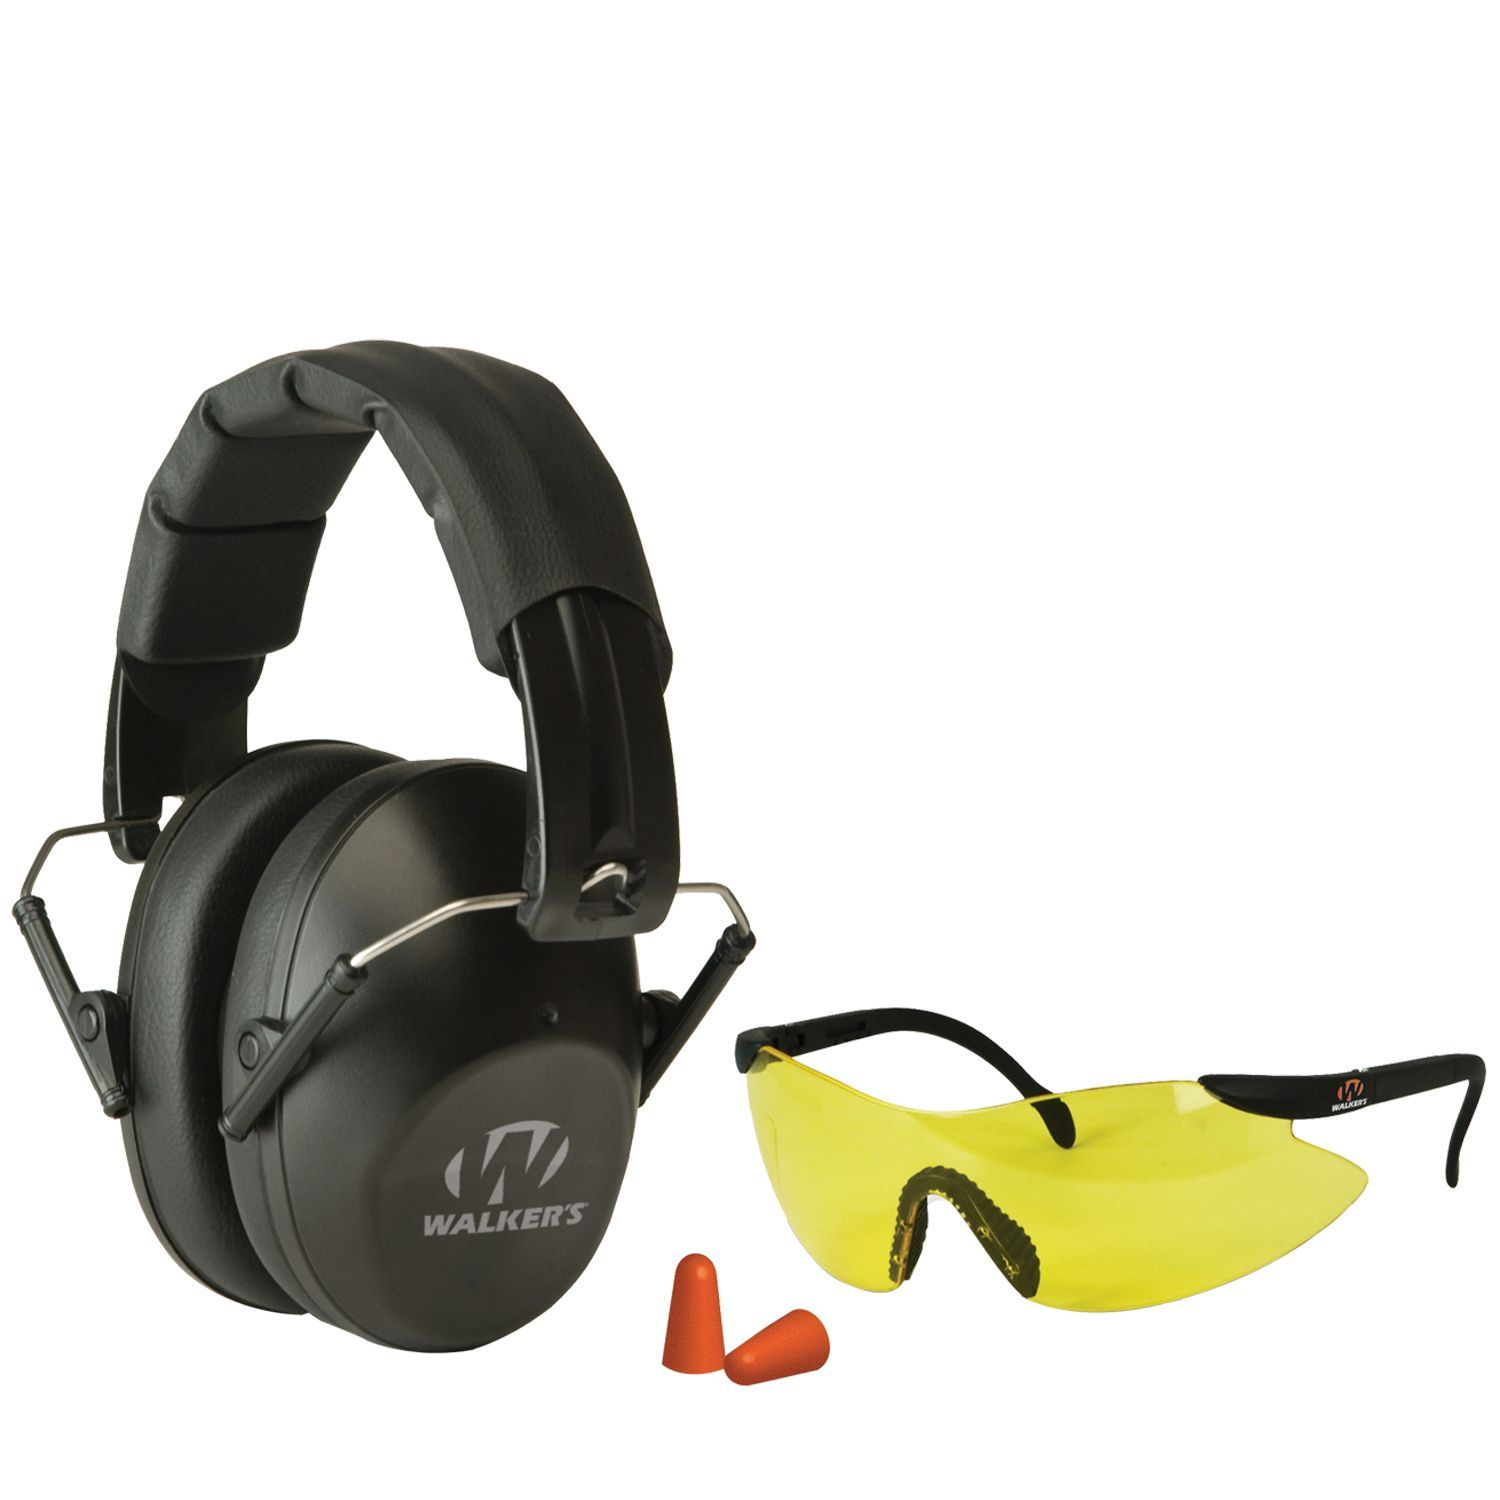 Walker's Game Ear Pro Shooting Earmuffs and Glasses Safety